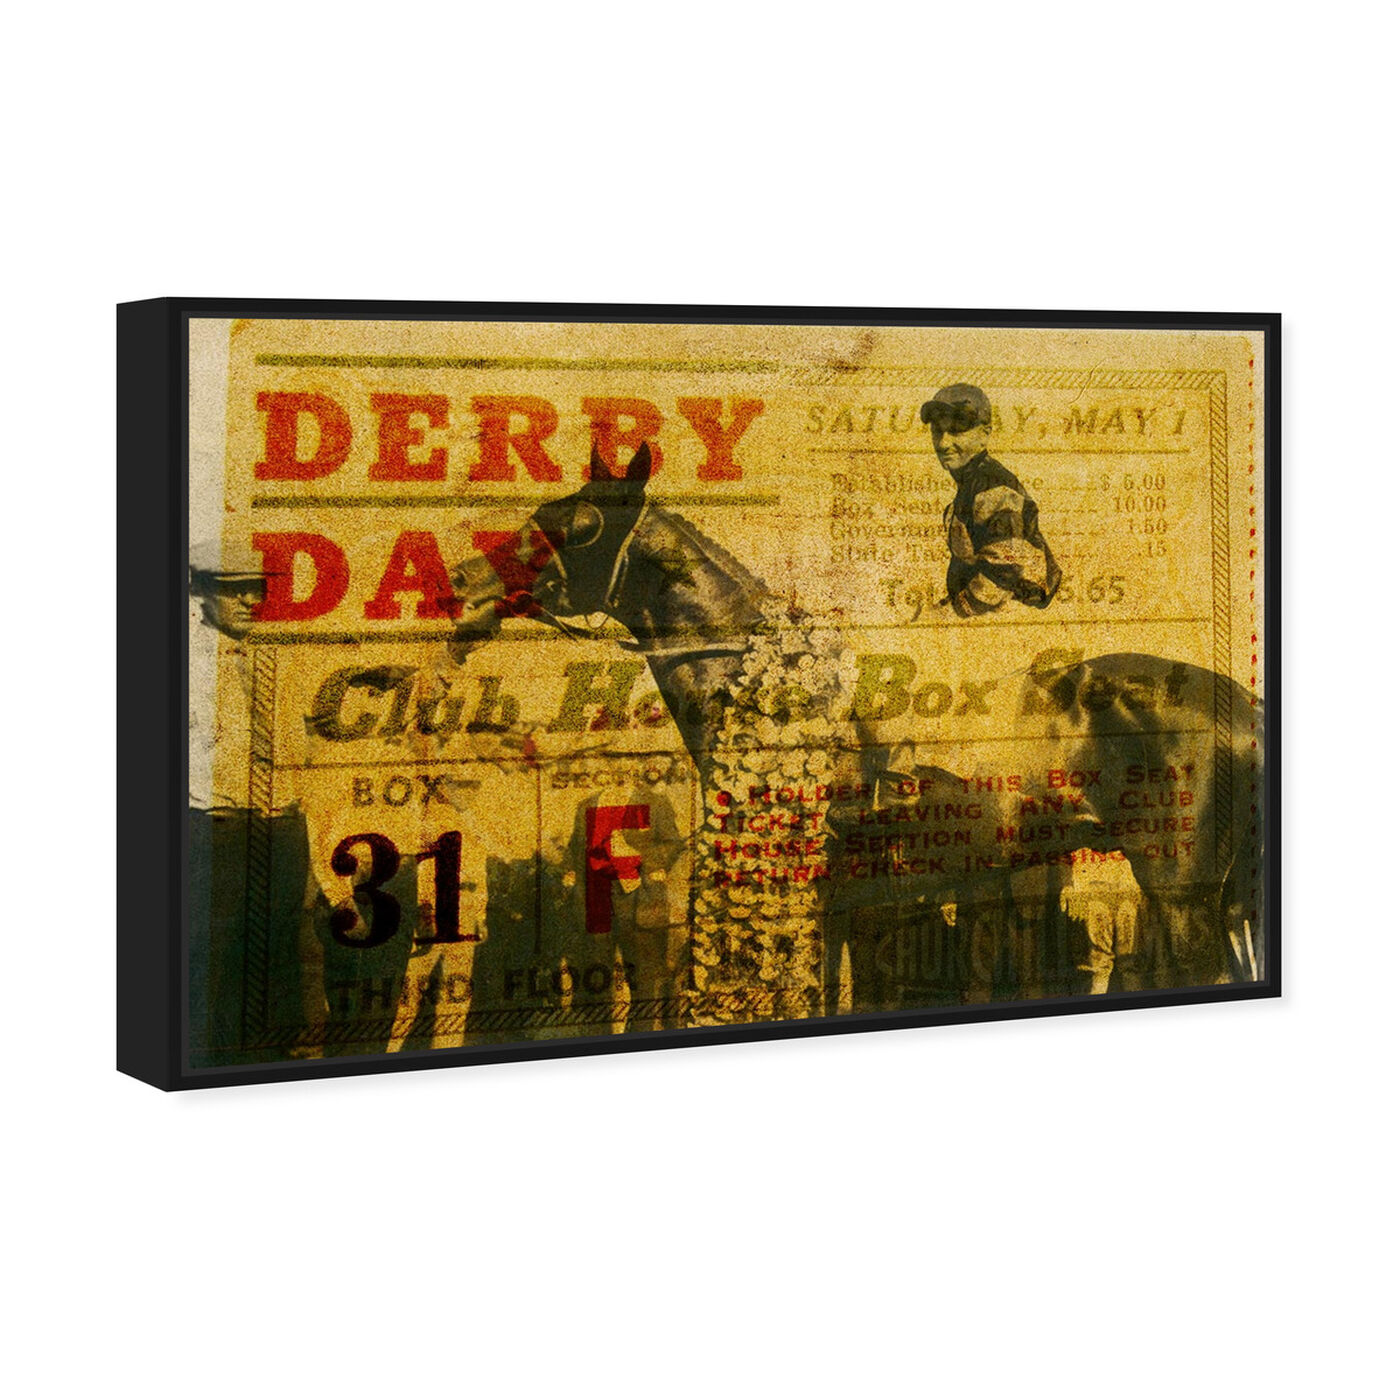 Angled view of Derby Day 1943 featuring advertising and posters art.